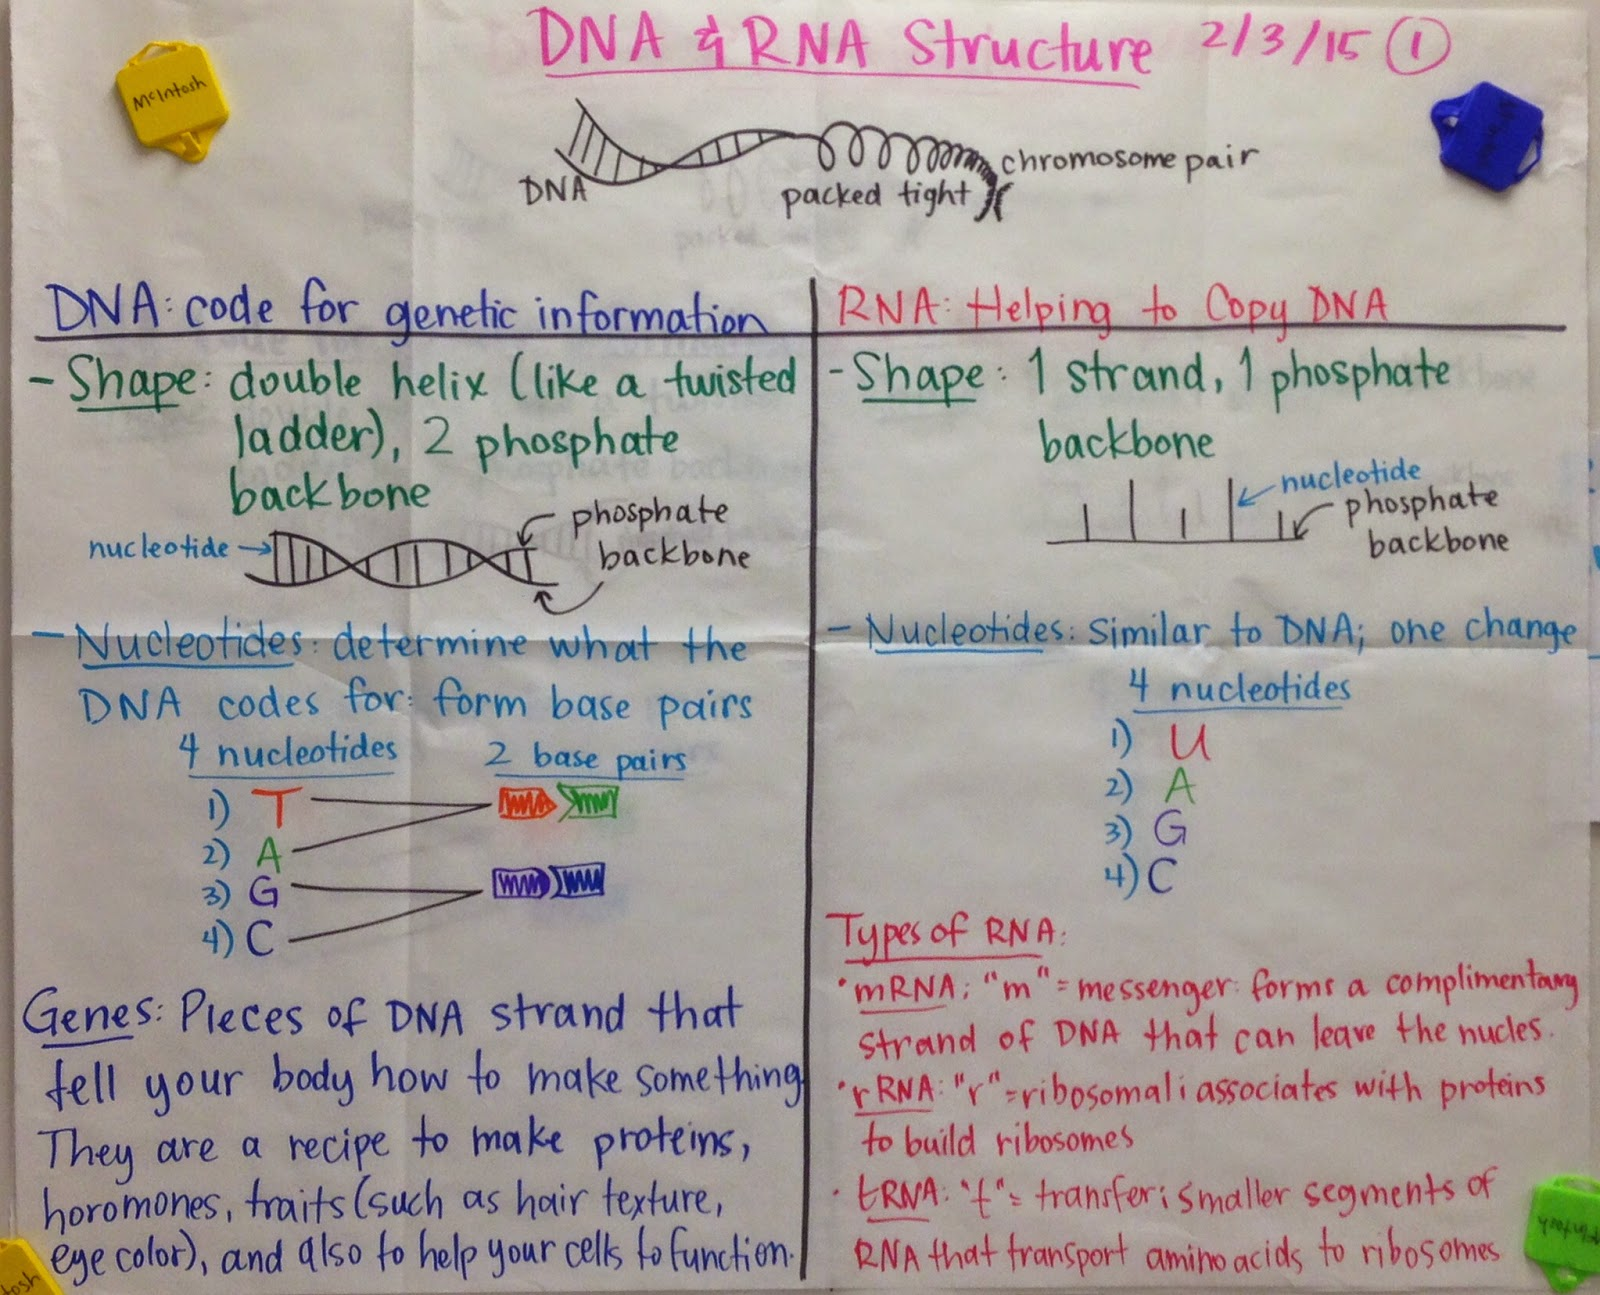 biology 3 3 dna structure Dna replication is a semi-conservative process because half of the parent dna molecule is conserved in each of the two daughter dna molecules the process of dna replication is actually much more complex than this simple summary.